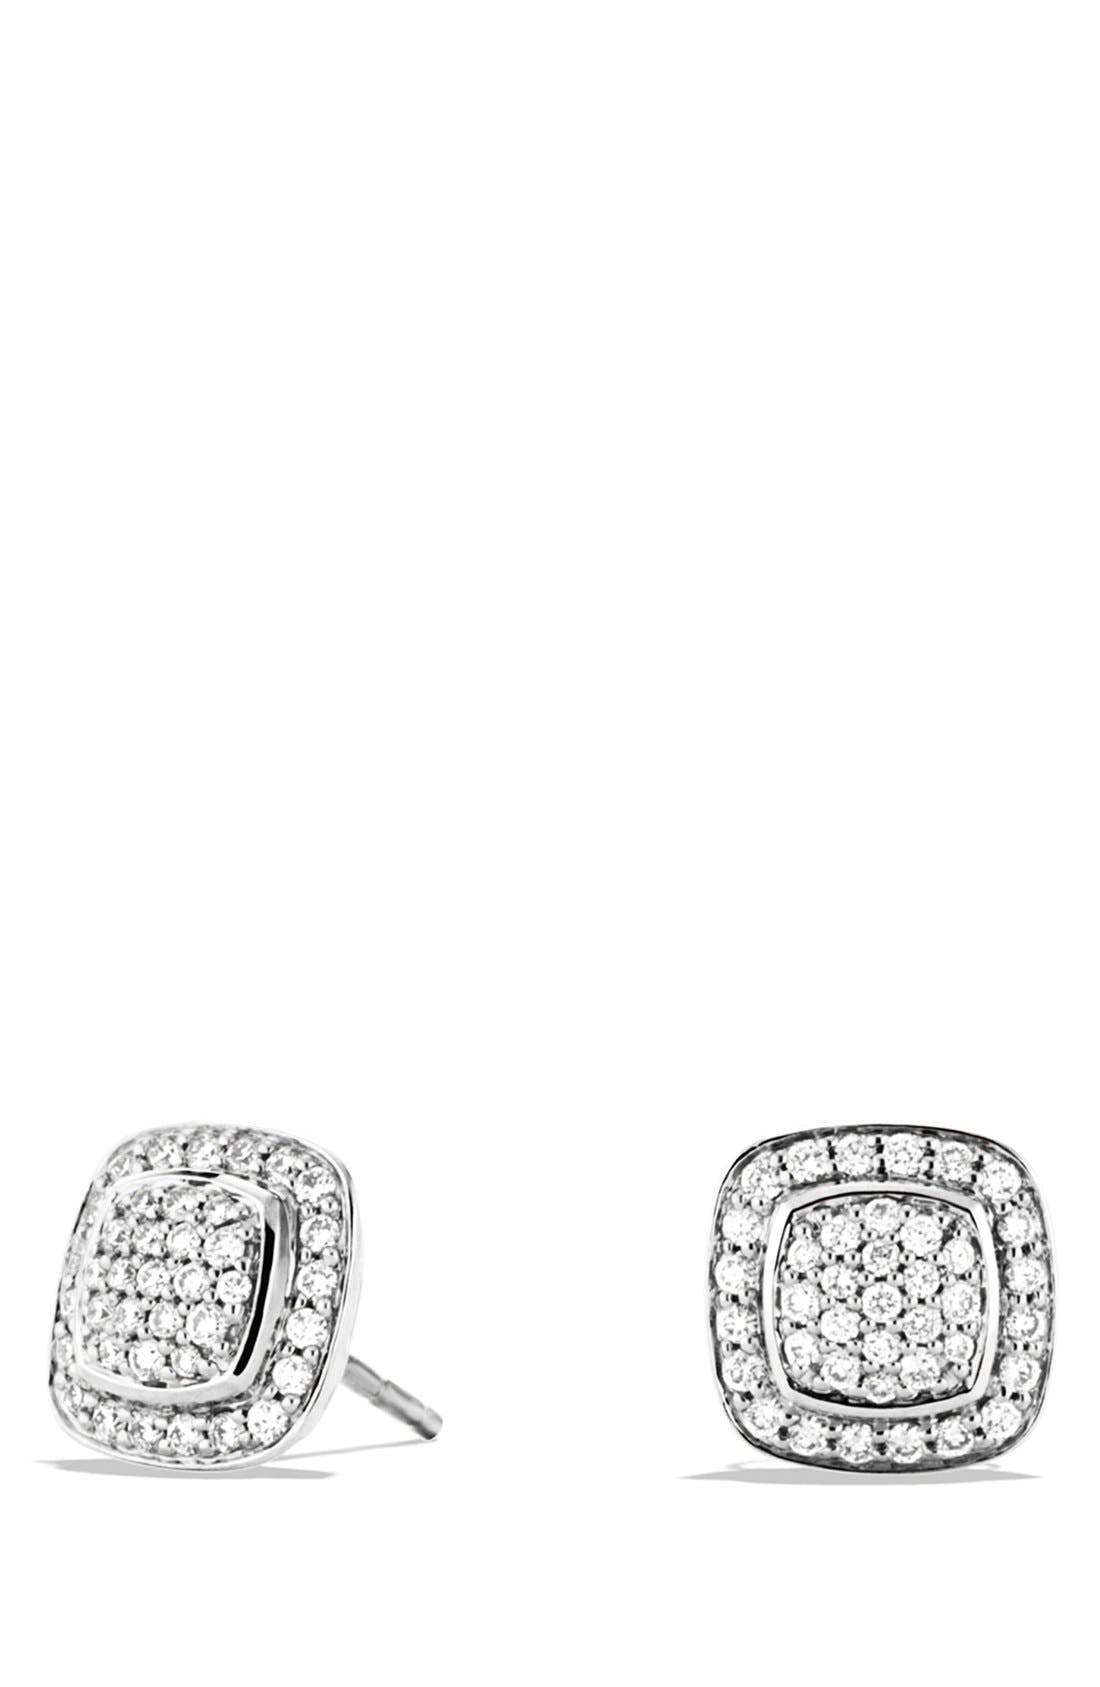 'Albion' Earrings with Diamonds,                             Main thumbnail 1, color,                             Diamond